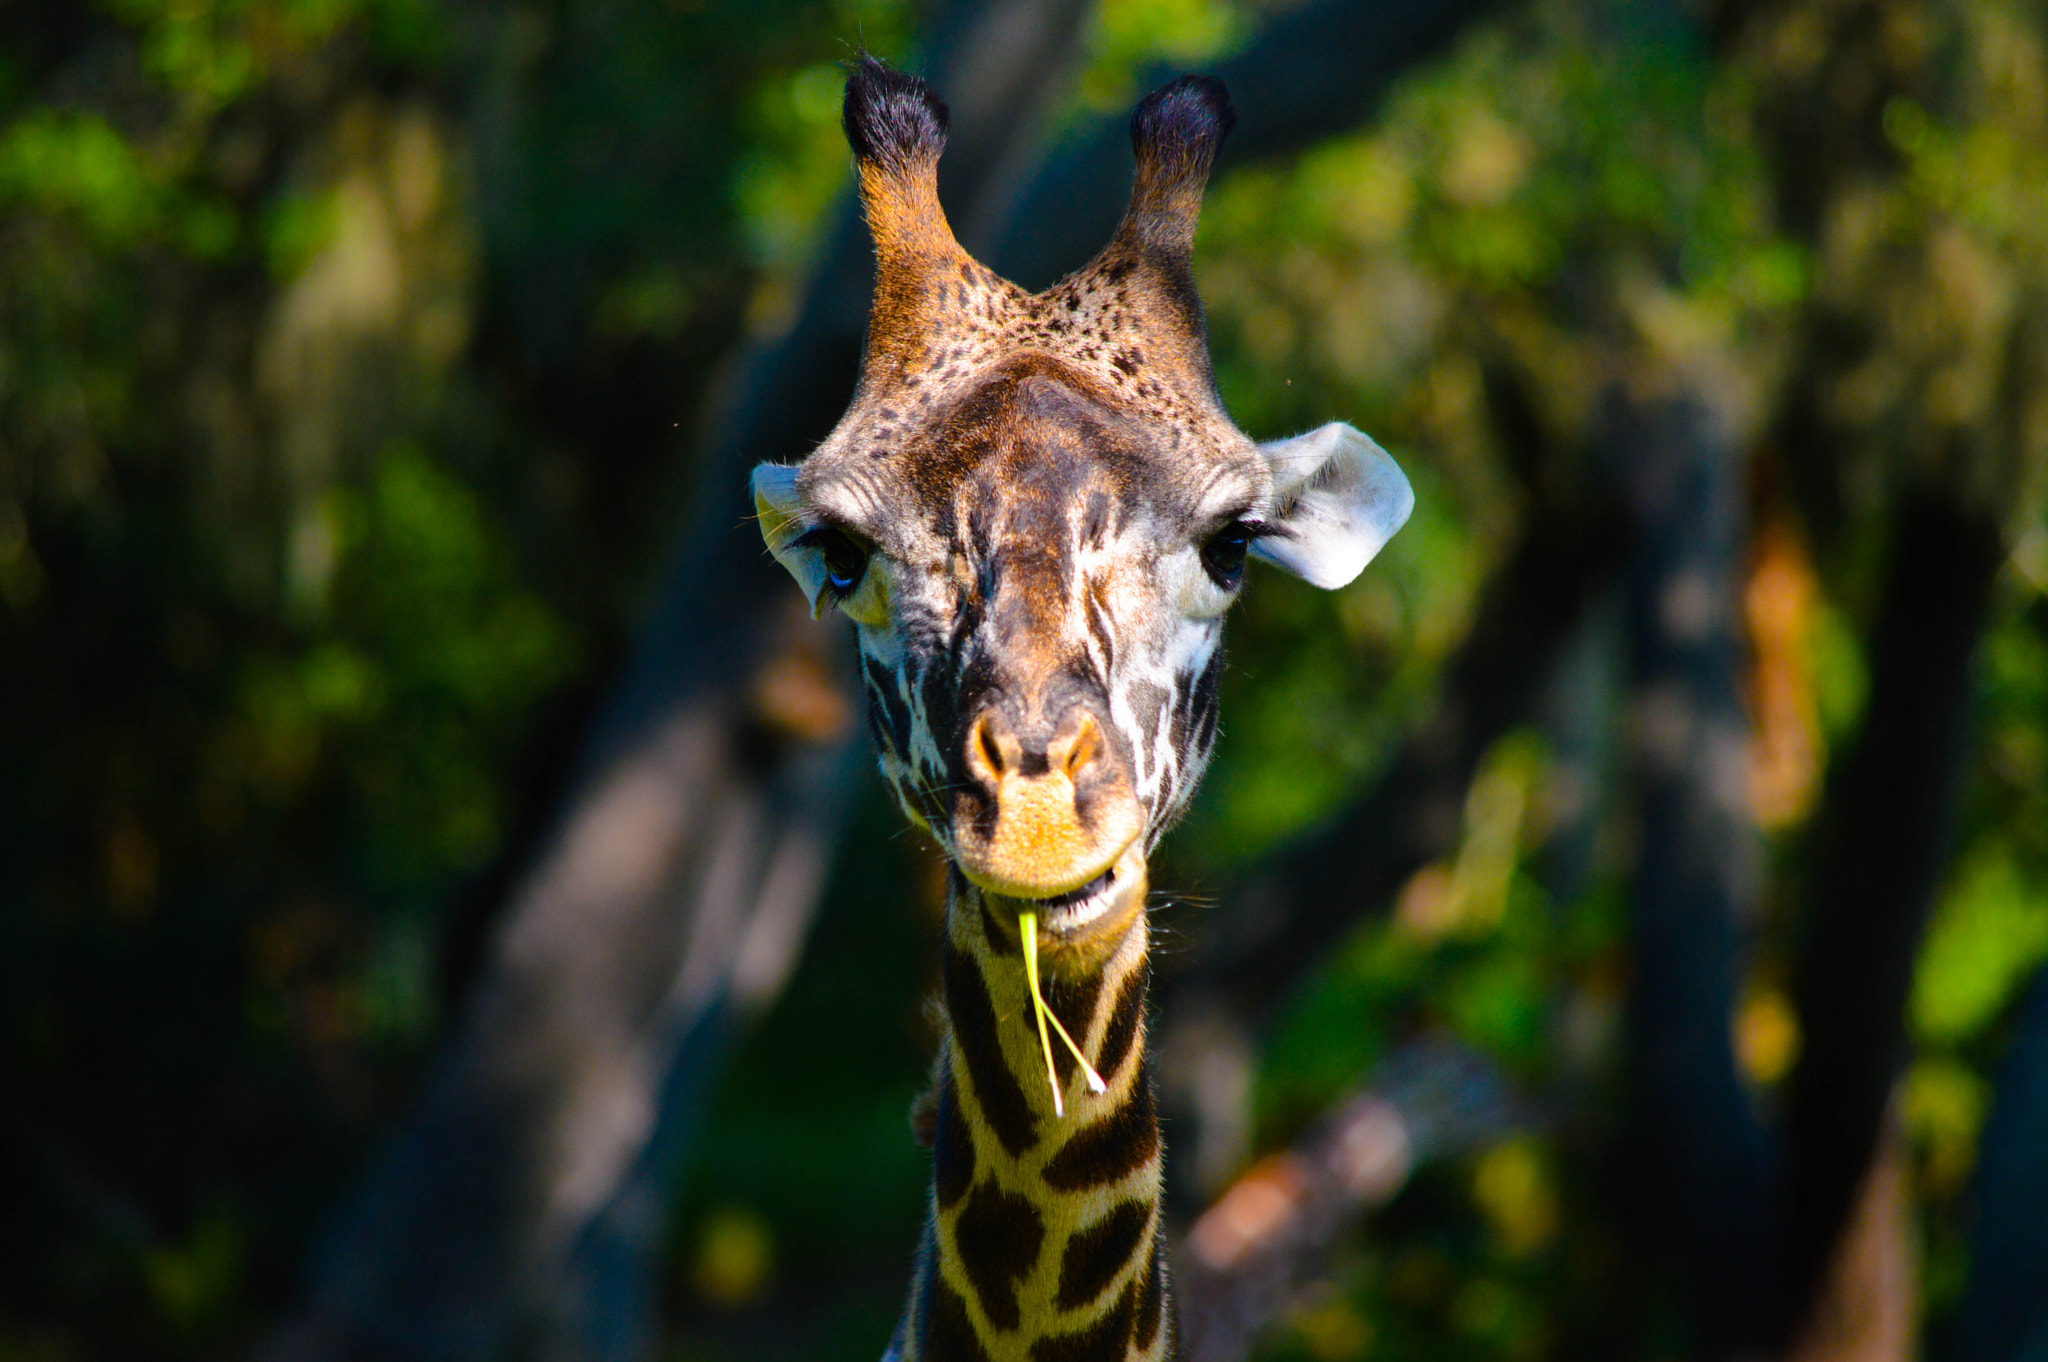 Photograph Giraffe by Bill Schuchman on 500px